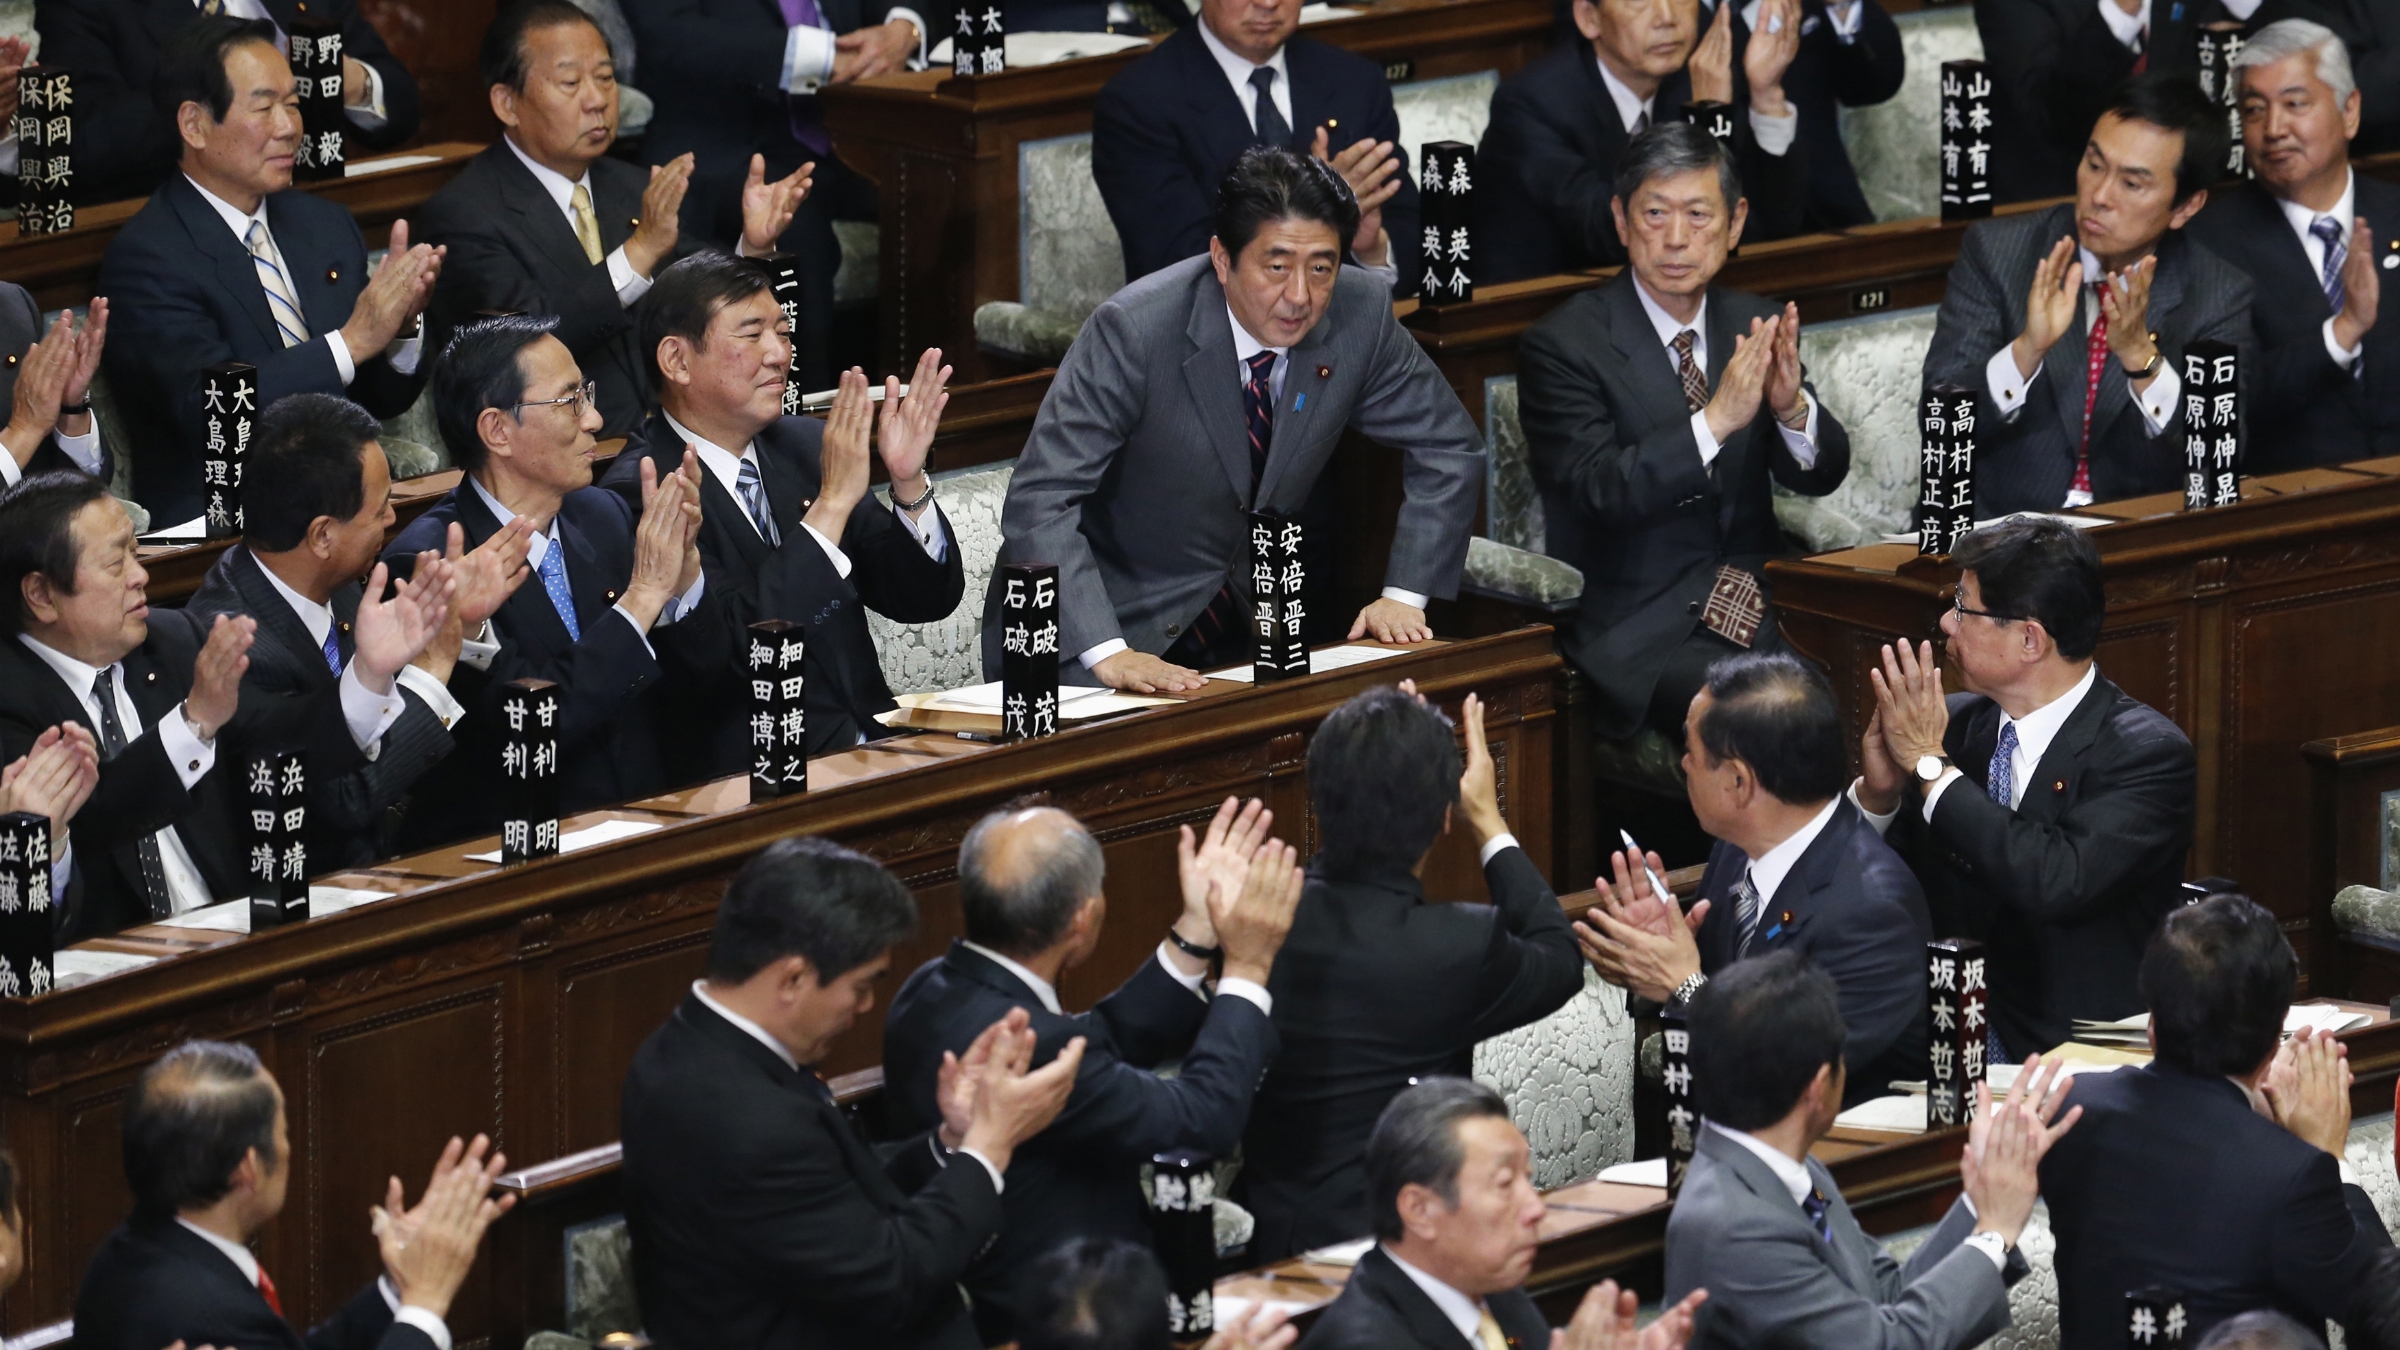 The leader of Liberal Democratic Party (LDP) Shinzo Abe (C) is applauded by his party members after being elected as Japan's Prime Minister at the Lower House of the Parliament in Tokyo December 26, 2012. The lower house of Japan's parliament approved Abe as prime minister on Wednesday, giving the hawkish lawmaker a second chance at the top job as the country battles deflation and confronts a rising China. REUTERS/Kim Kyung-Hoon